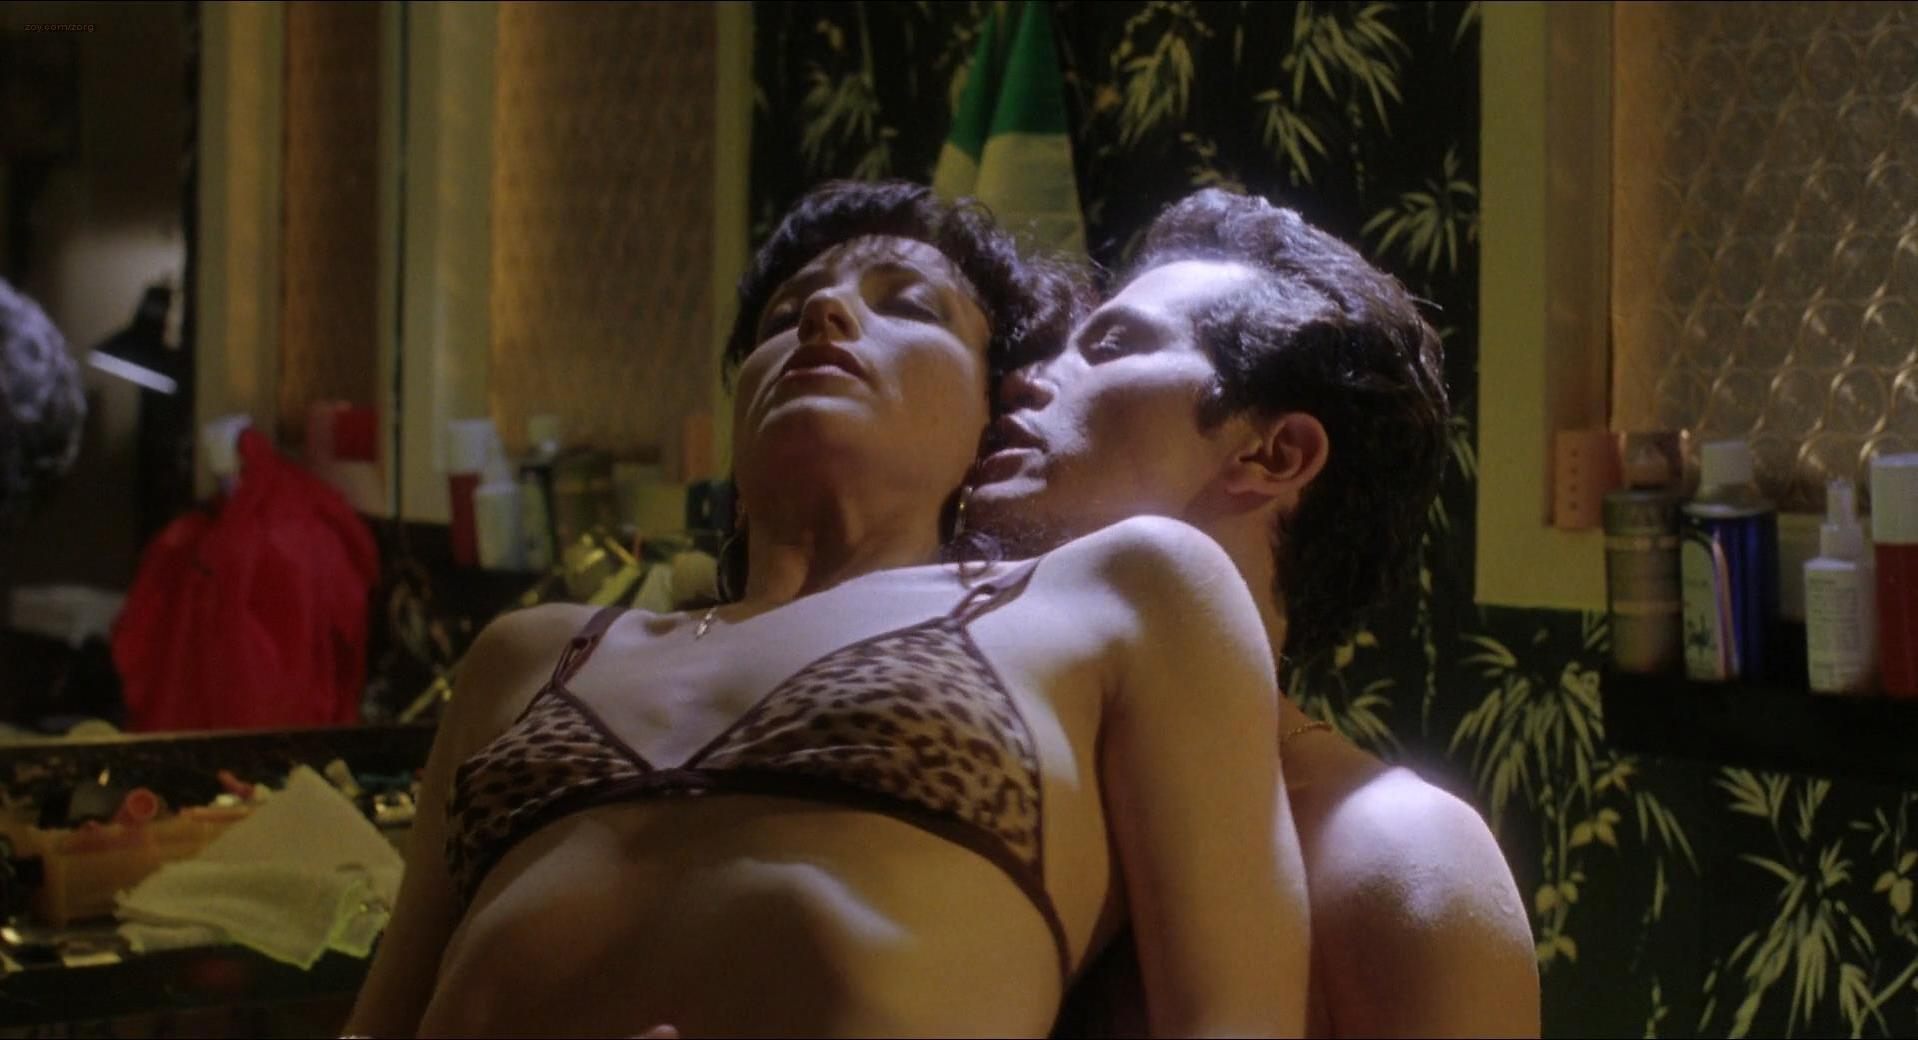 Mira sorvino sex scene